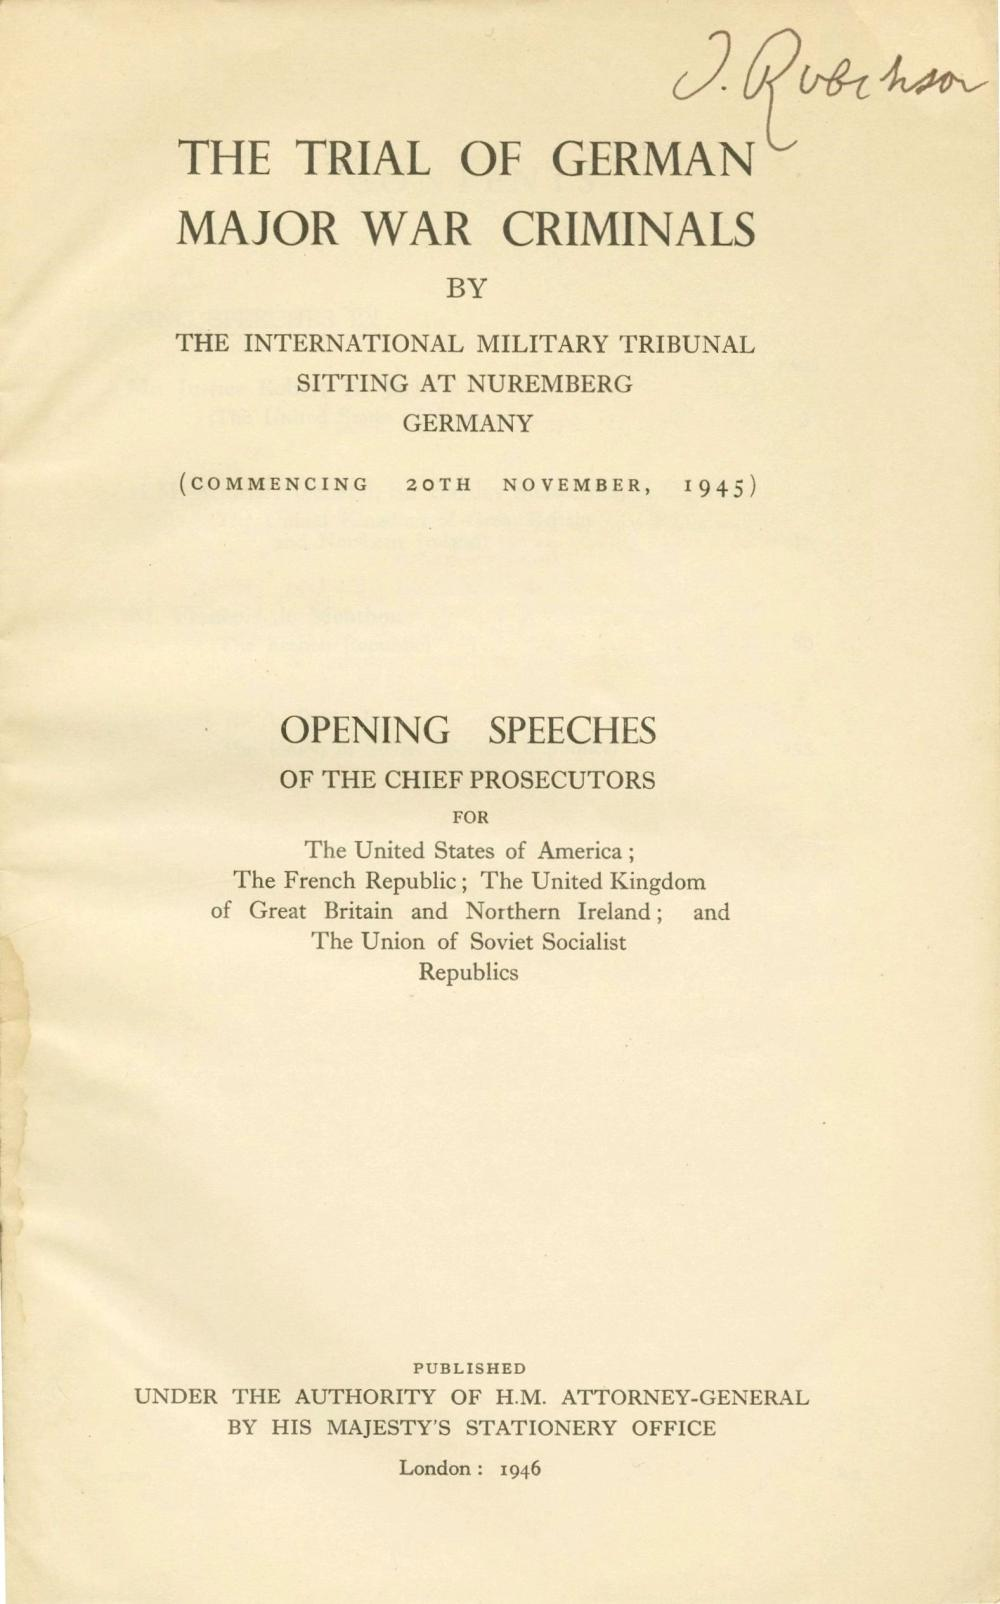 Holocaust - Minutes of the Opening Speeches at the Nuremberg Trials - First Edition - The Copy of Dr. Jacob Robinson - United States Attorney at the Nuremberg Trials